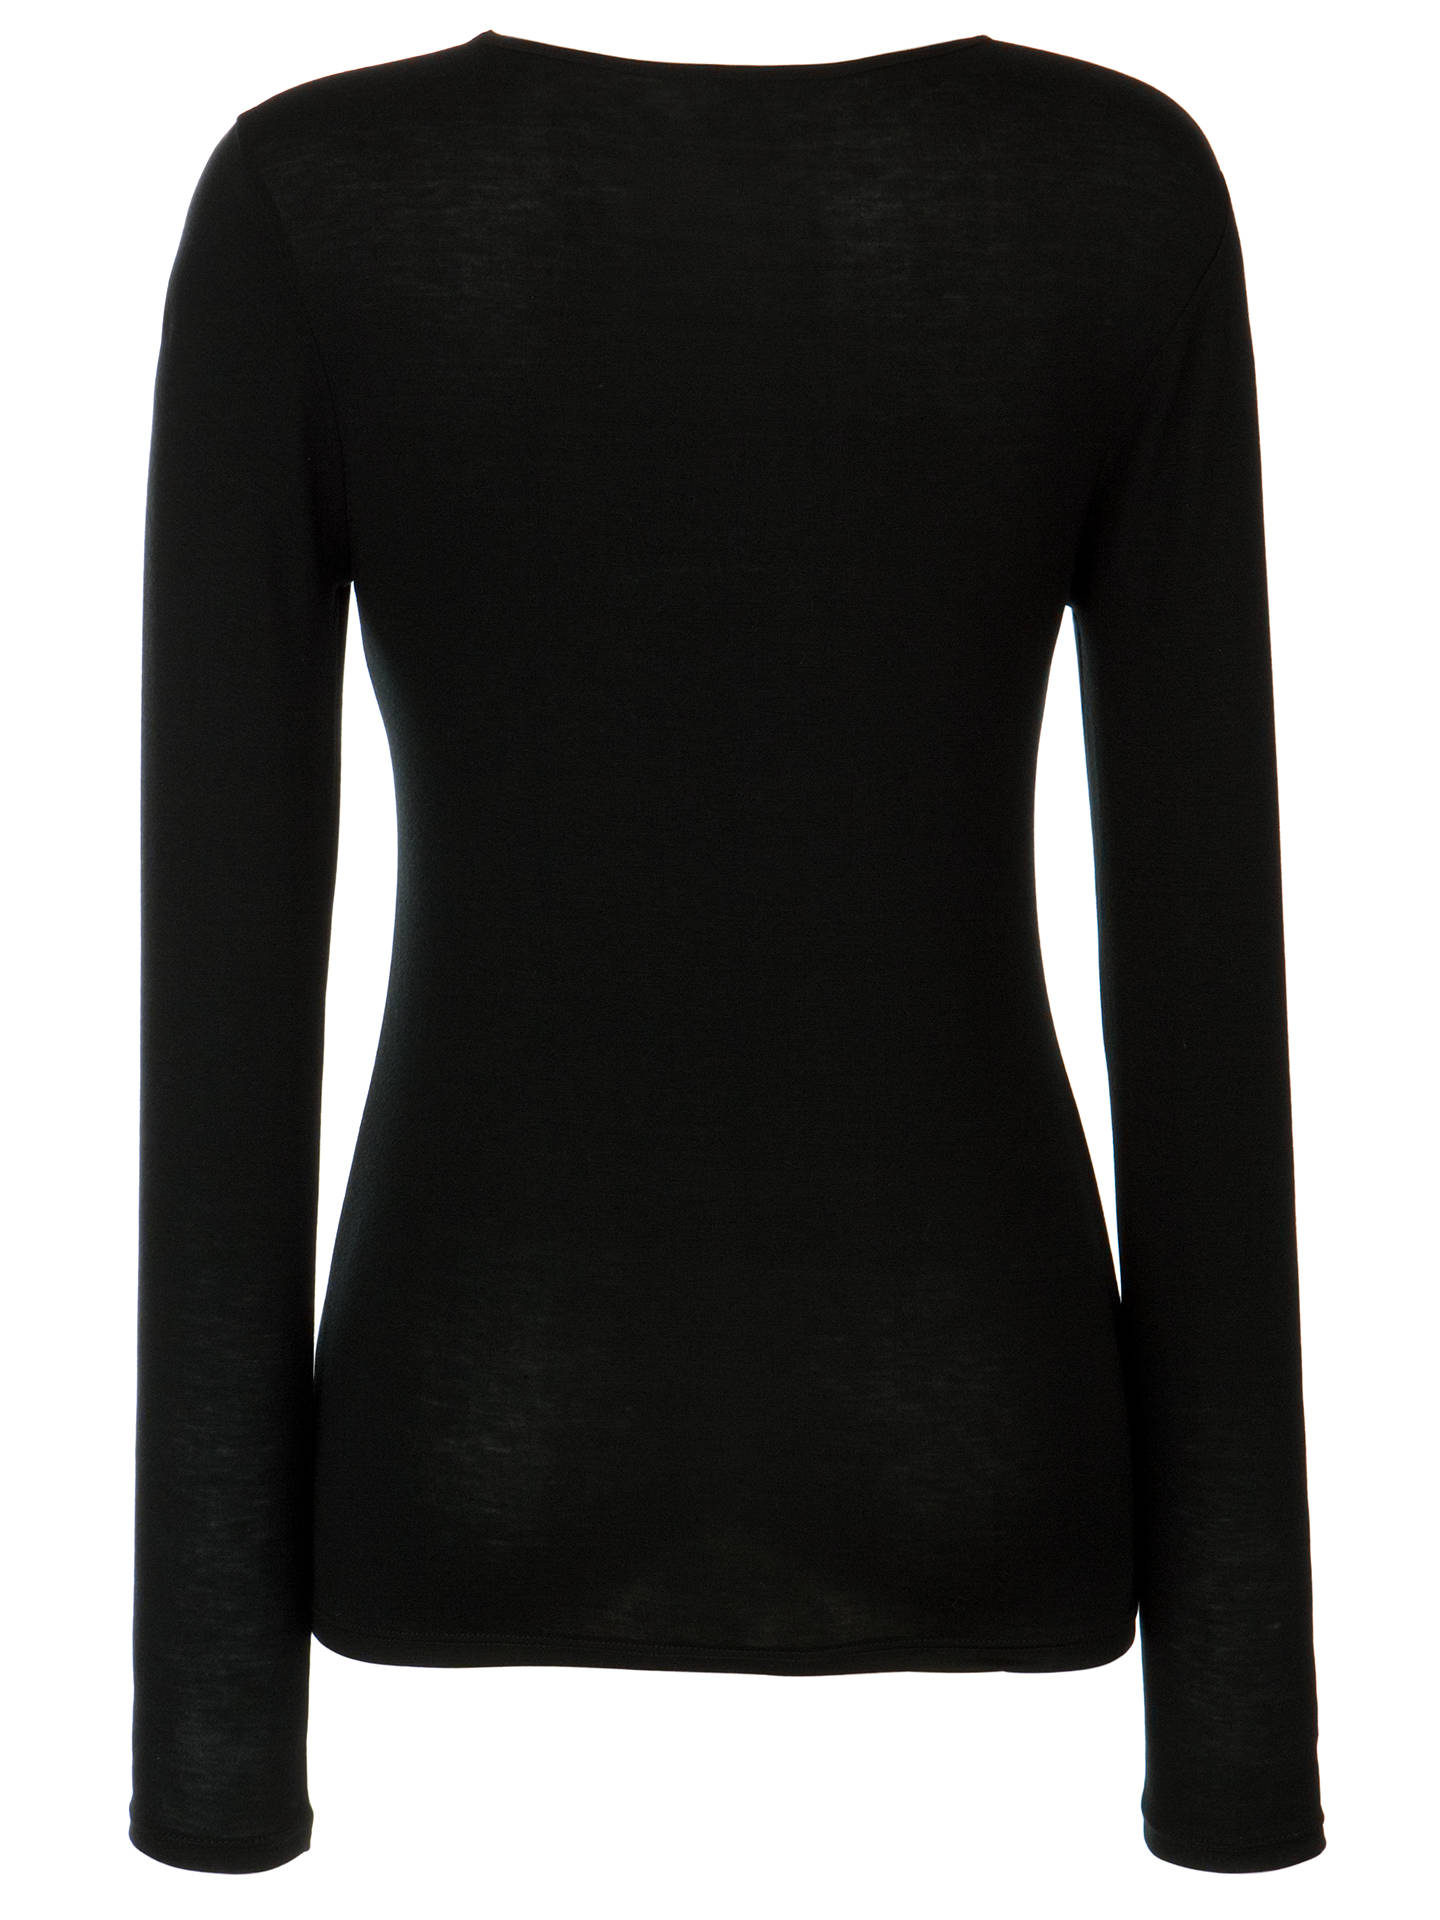 BuyJohn Lewis & Partners Long Sleeve Heat Generating Thermal Top, Black, 8-10 Online at johnlewis.com